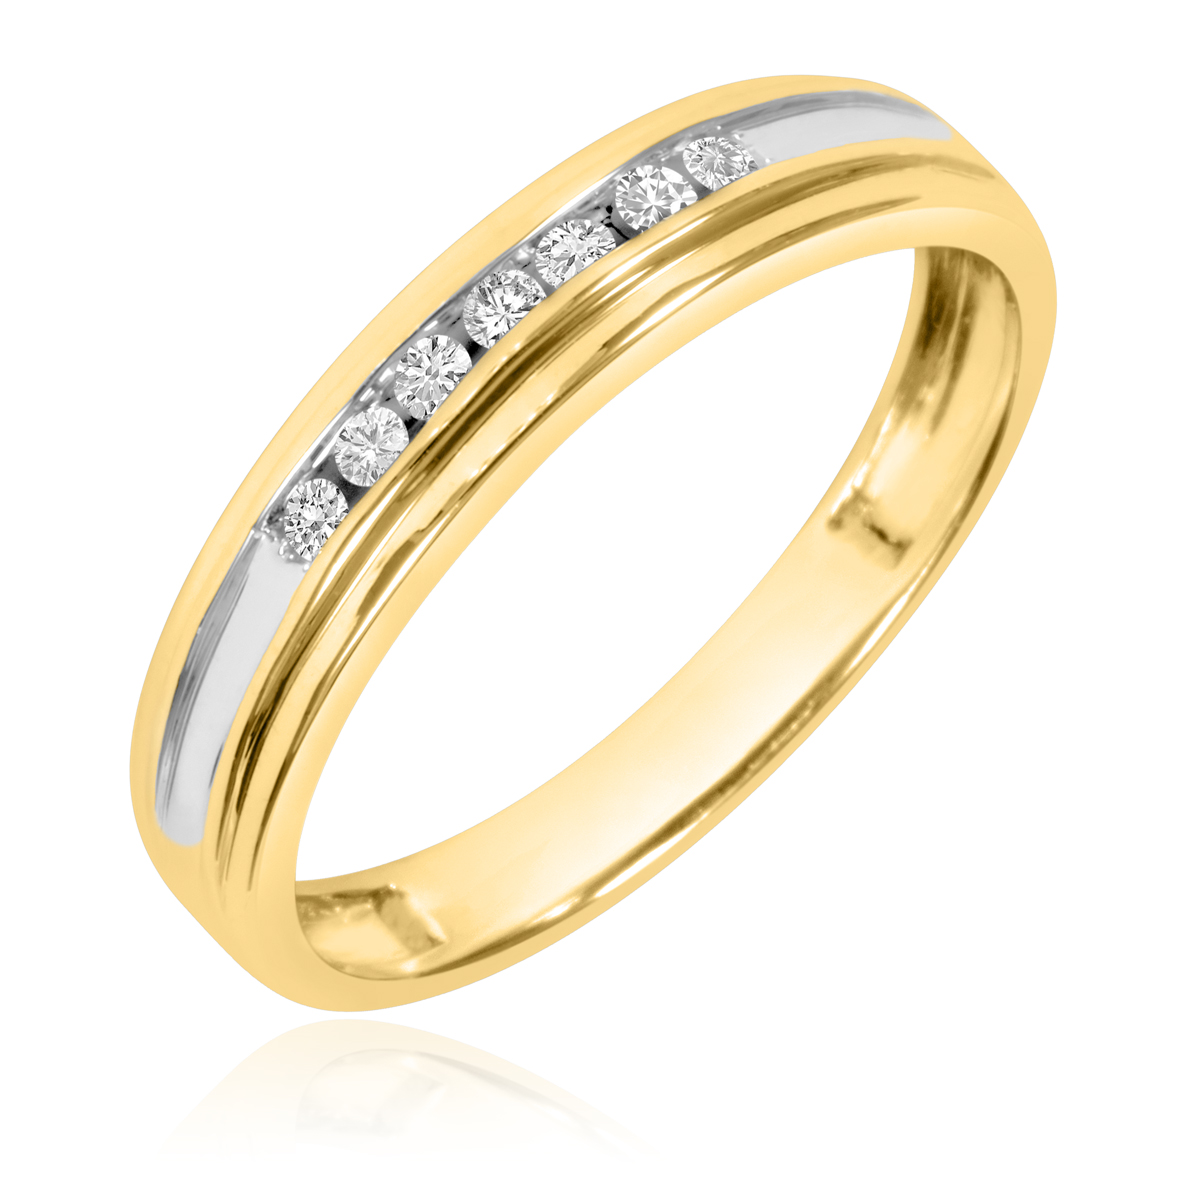 1/5 Carat T.W. Round Cut Diamond Men's Wedding Band 10K Yellow Gold- Size 8